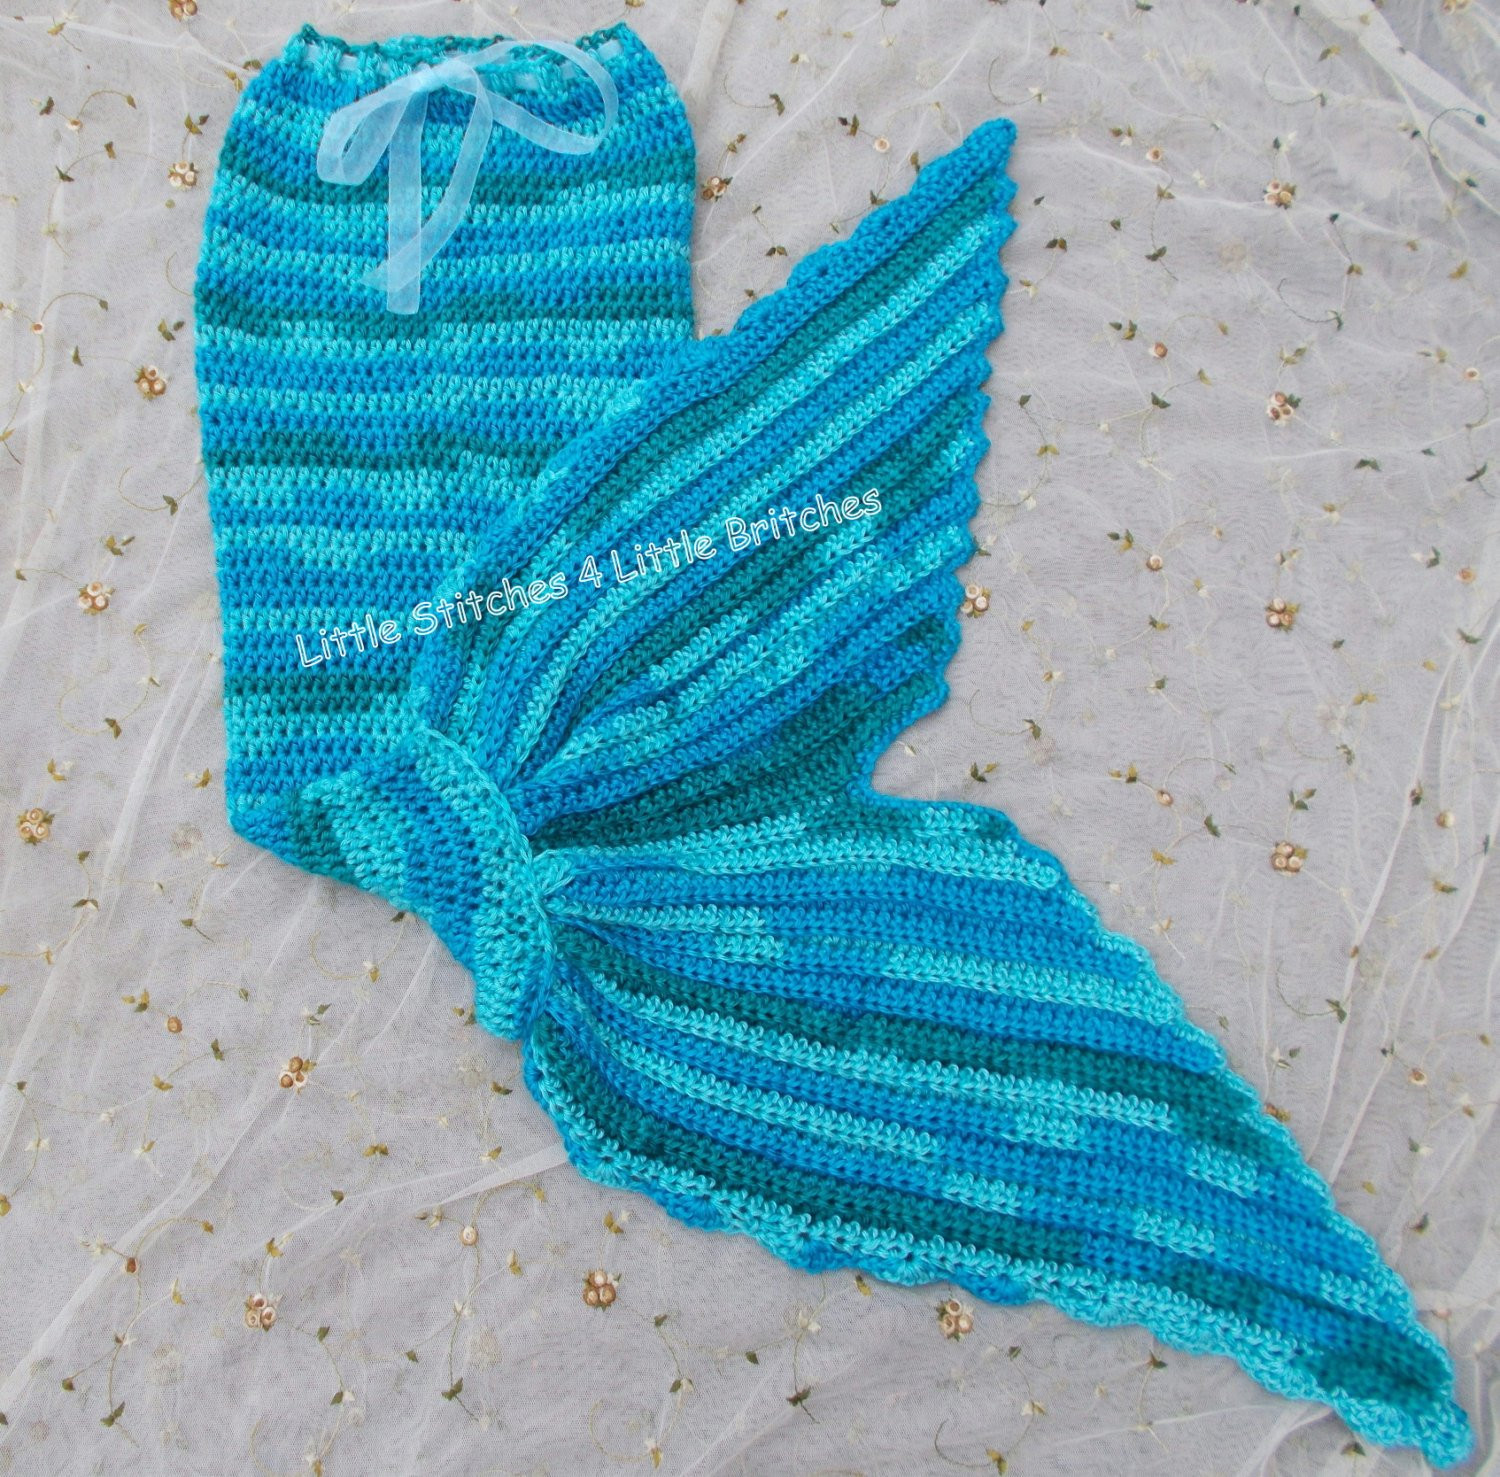 Crochet Mermaid Outfit Lovely Mermaid Tail Costume Crochet Mermaid Tail Of Contemporary 36 Photos Crochet Mermaid Outfit